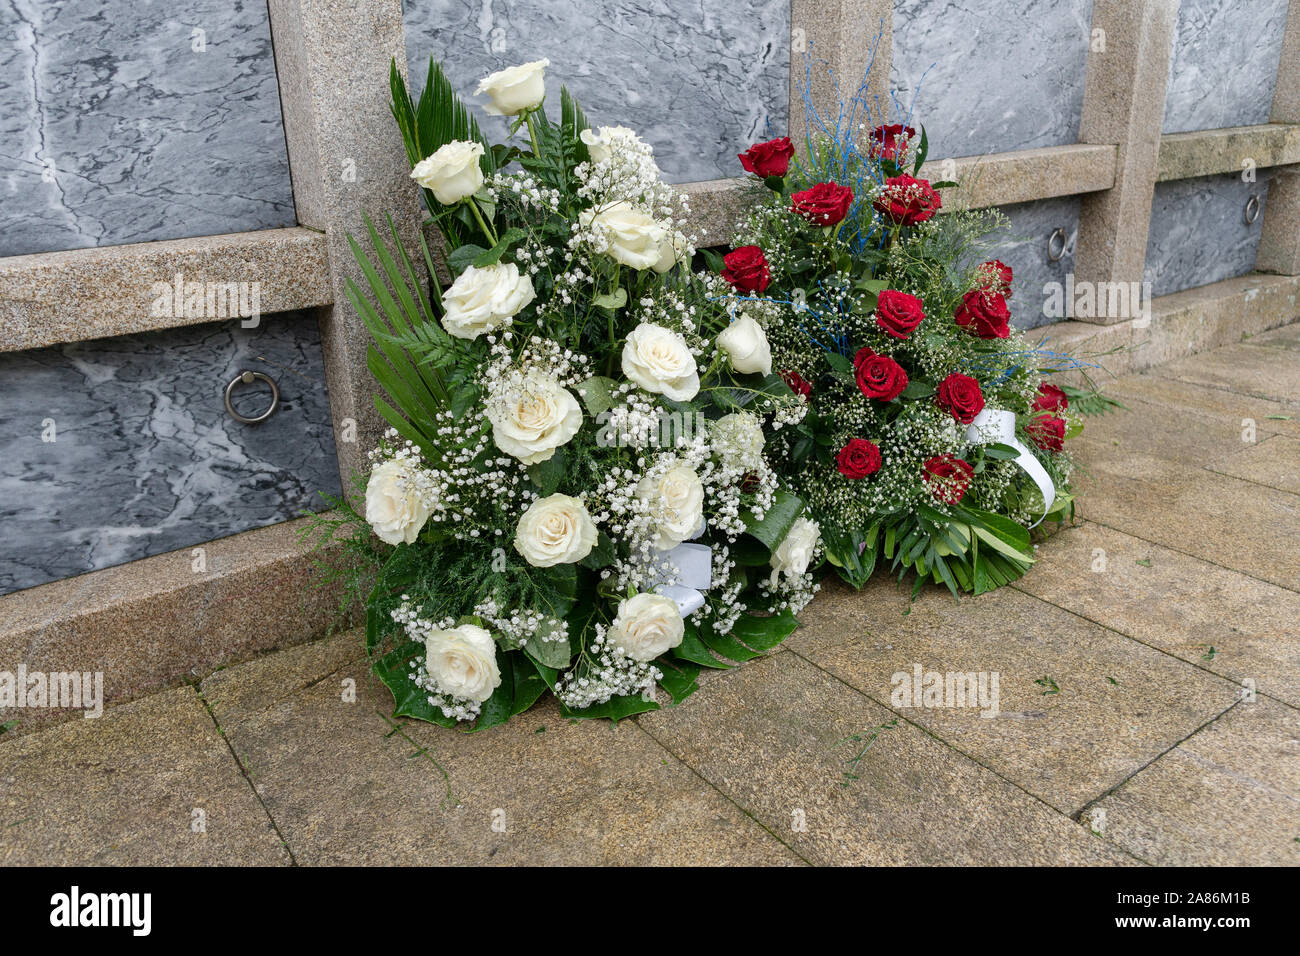 Tomb Flower Arrangement High Resolution Stock Photography And Images Alamy